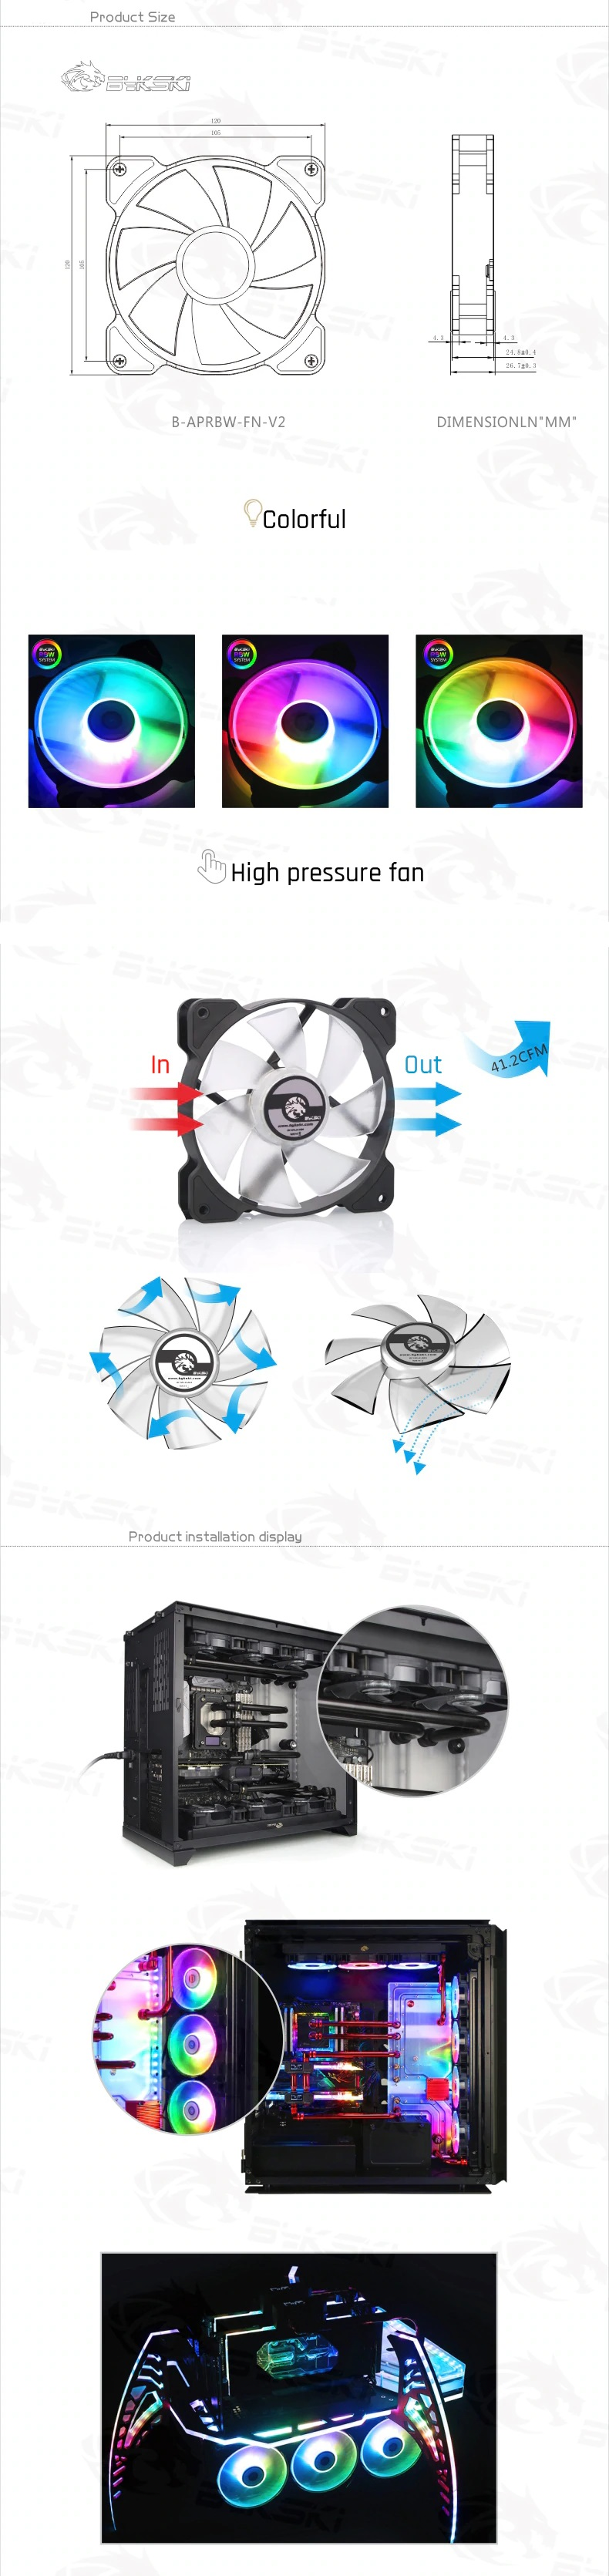 A large marketing image providing additional information about the product Bykski 120mm RBW Black/White Cooling Fan (V2) - Additional alt info not provided